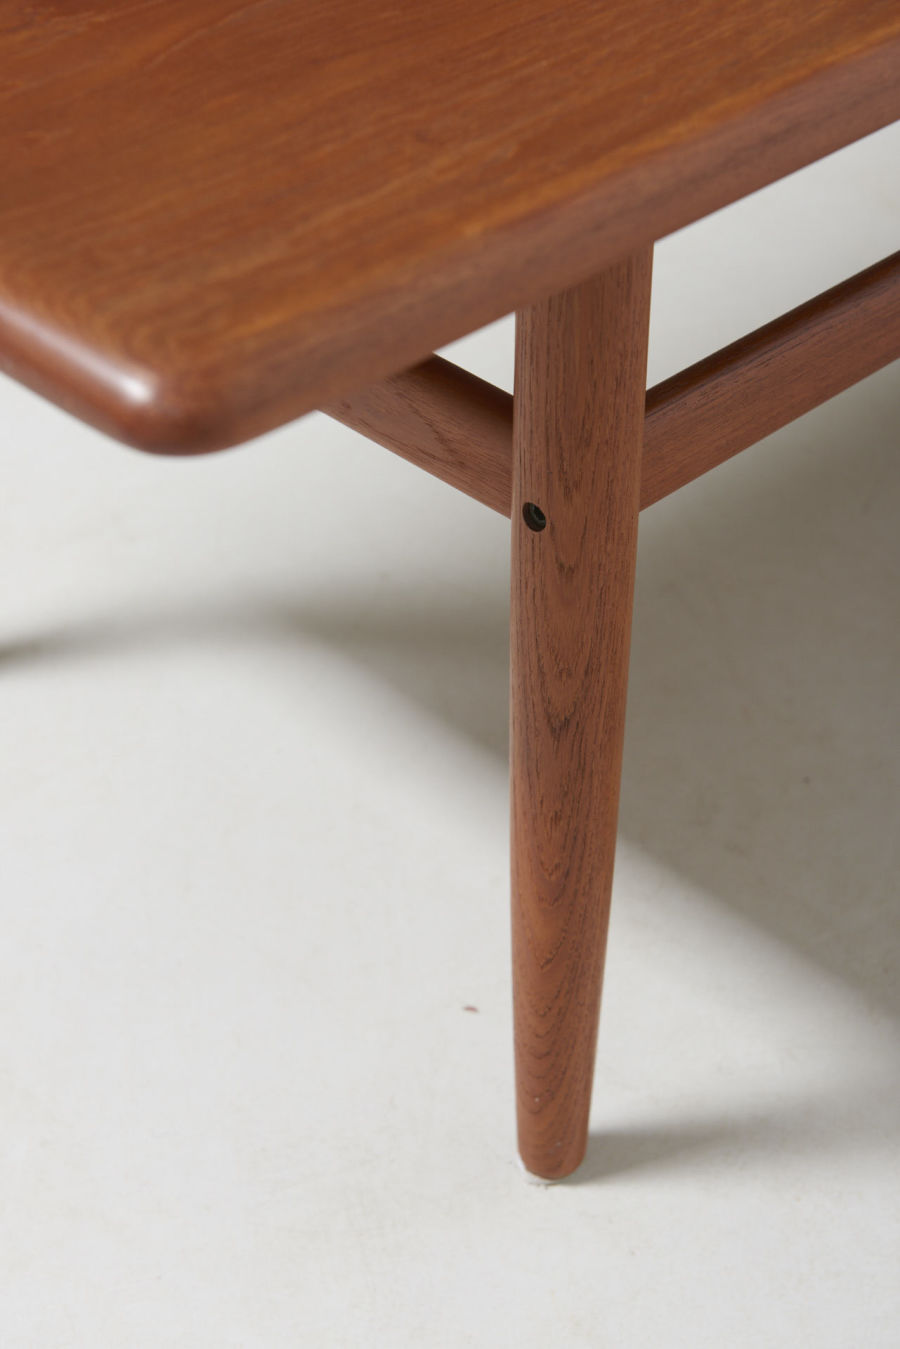 modestfurniture-vintage-2349-danish-low-table-teak08